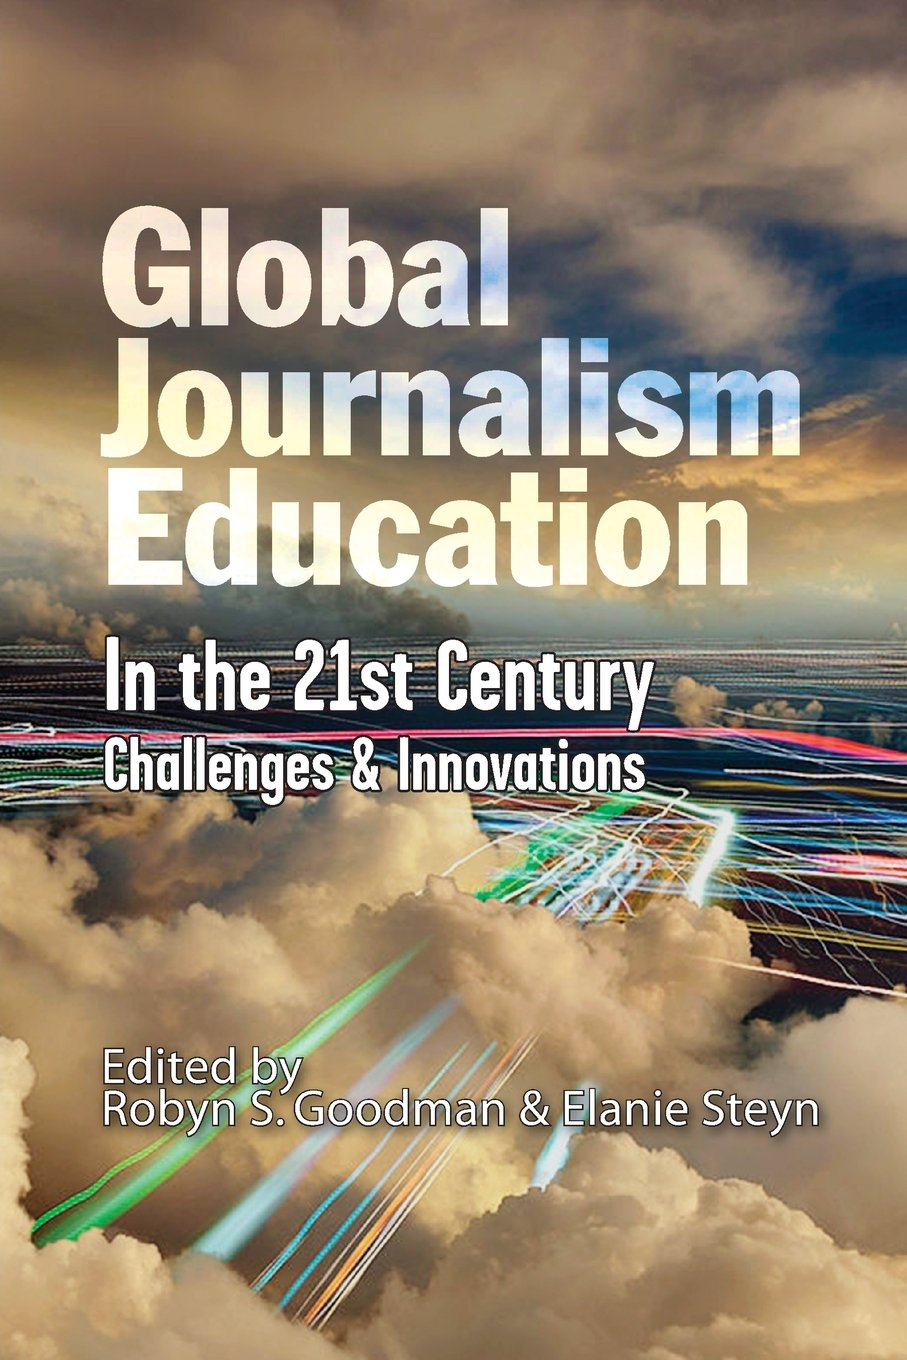 World Journalism Education Council